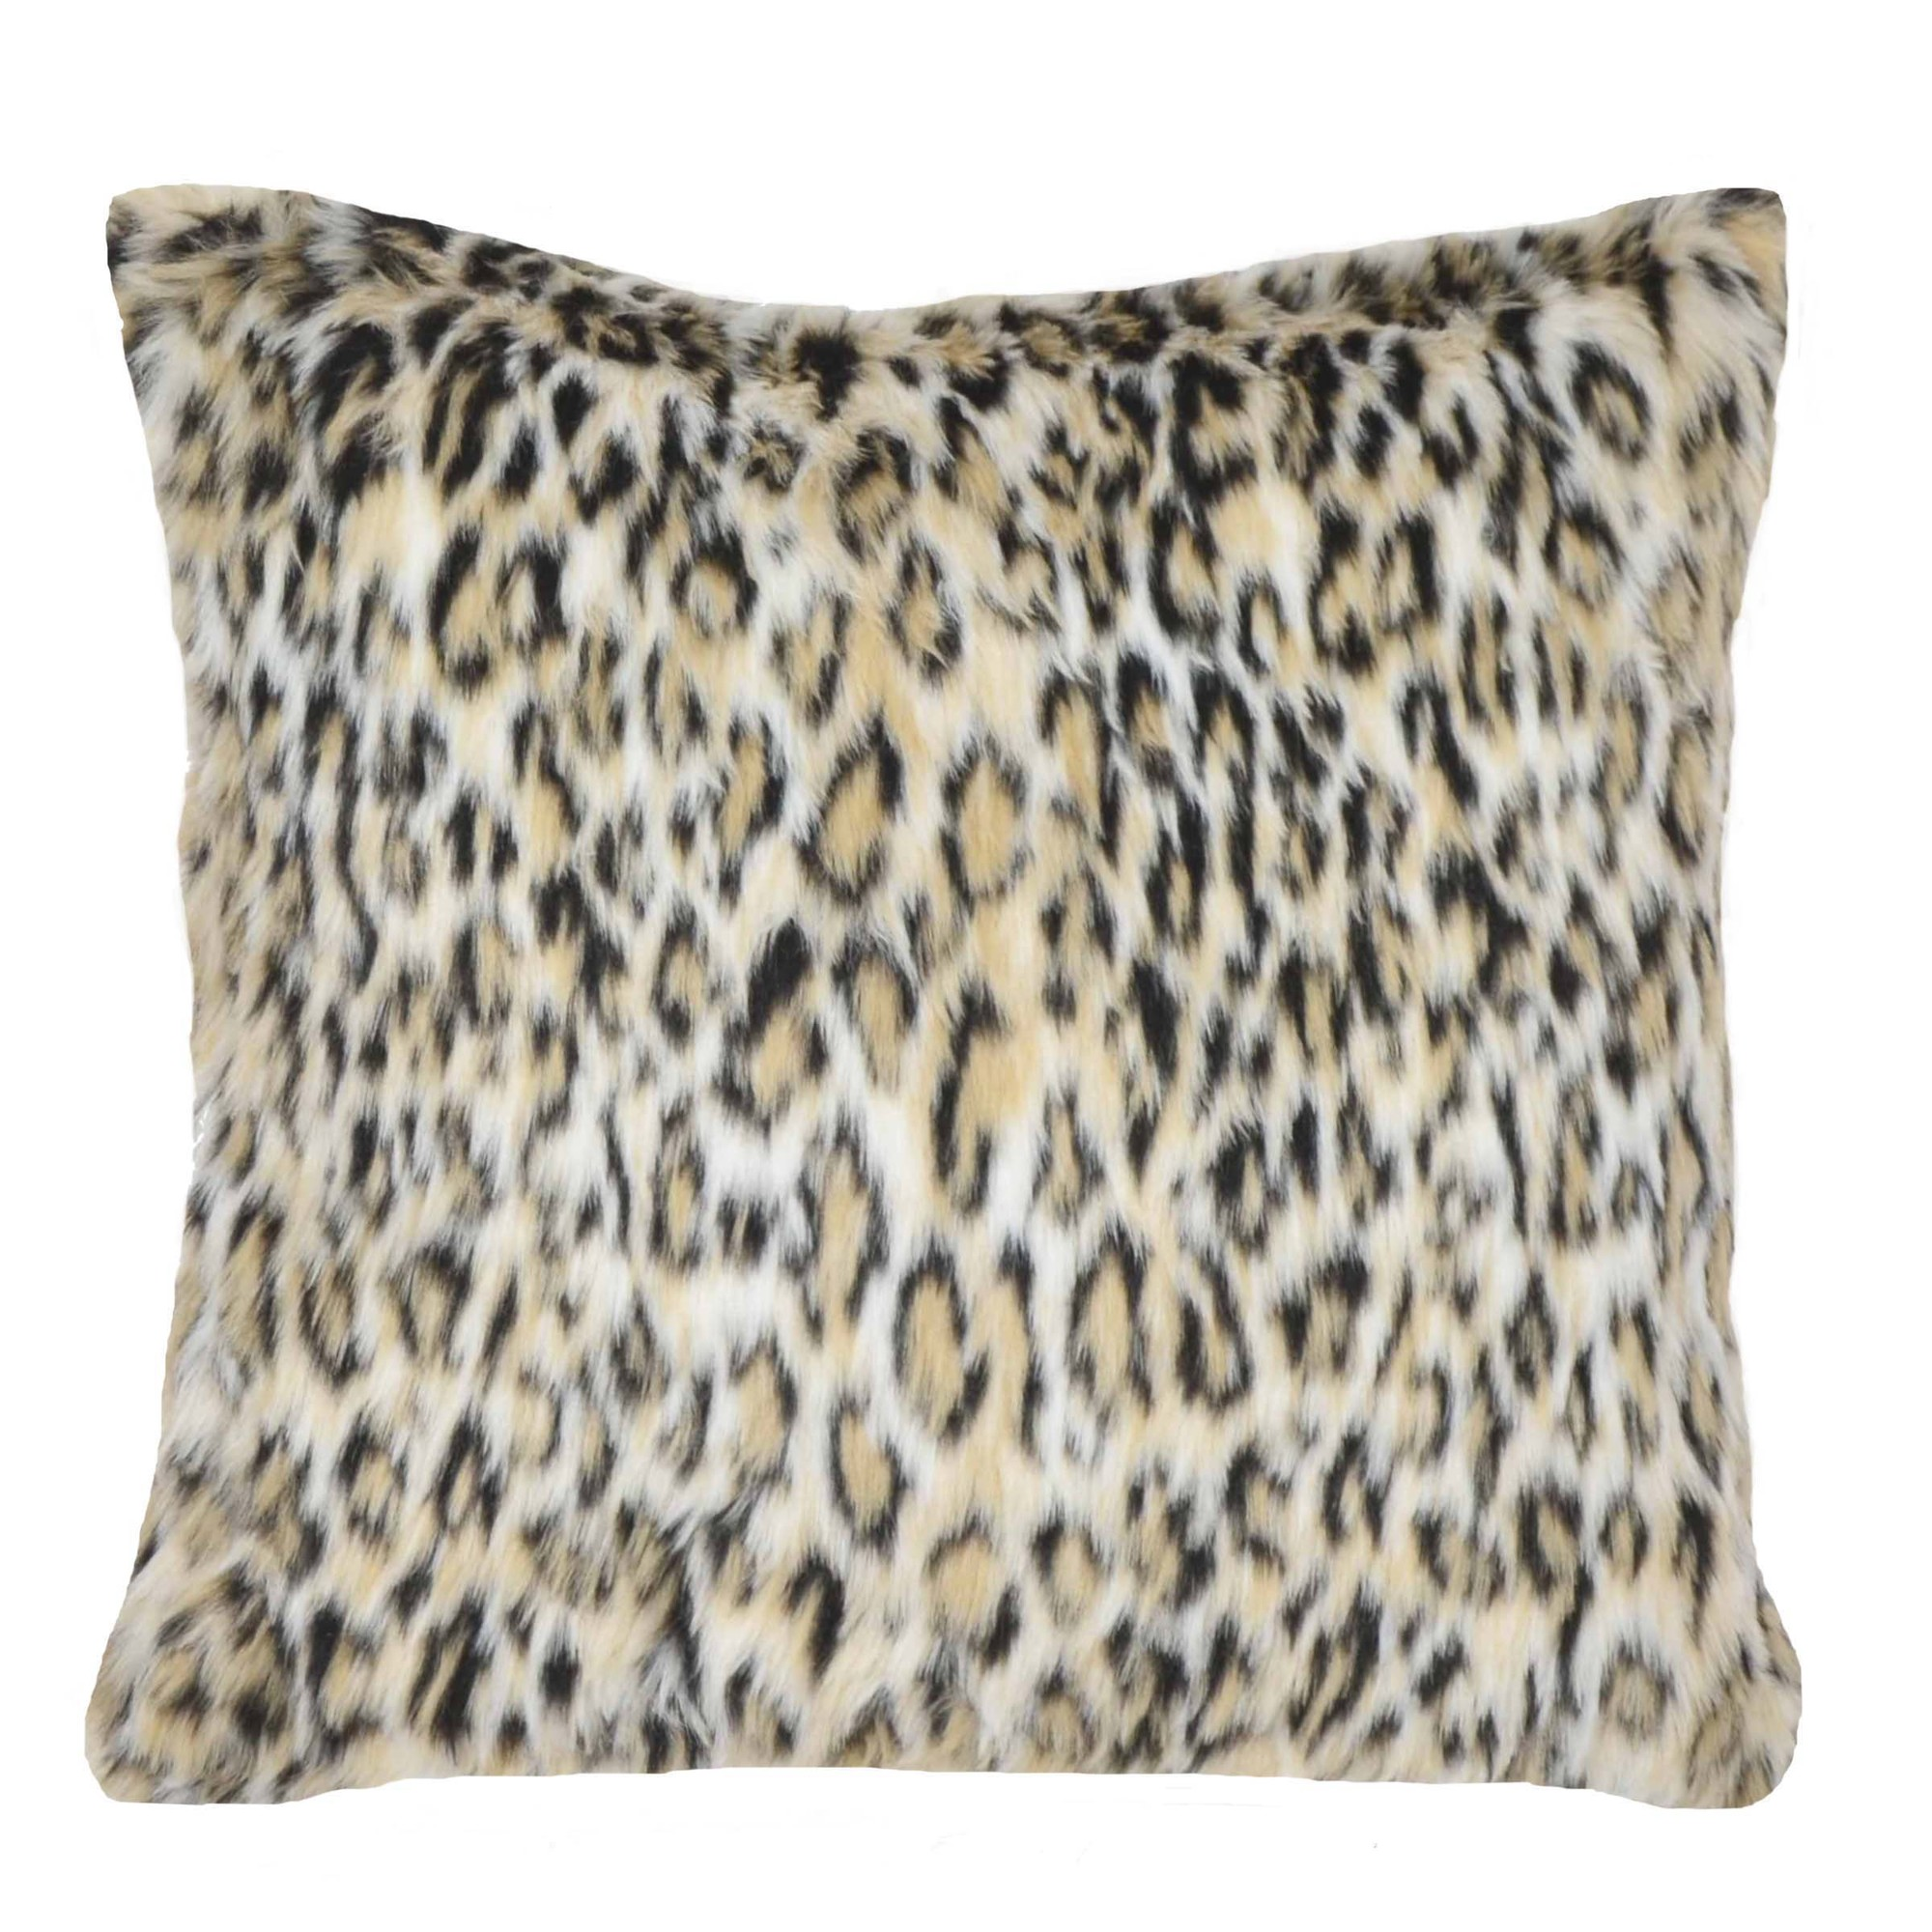 Ellery Homestyles Studio Leopard Fur Pillow